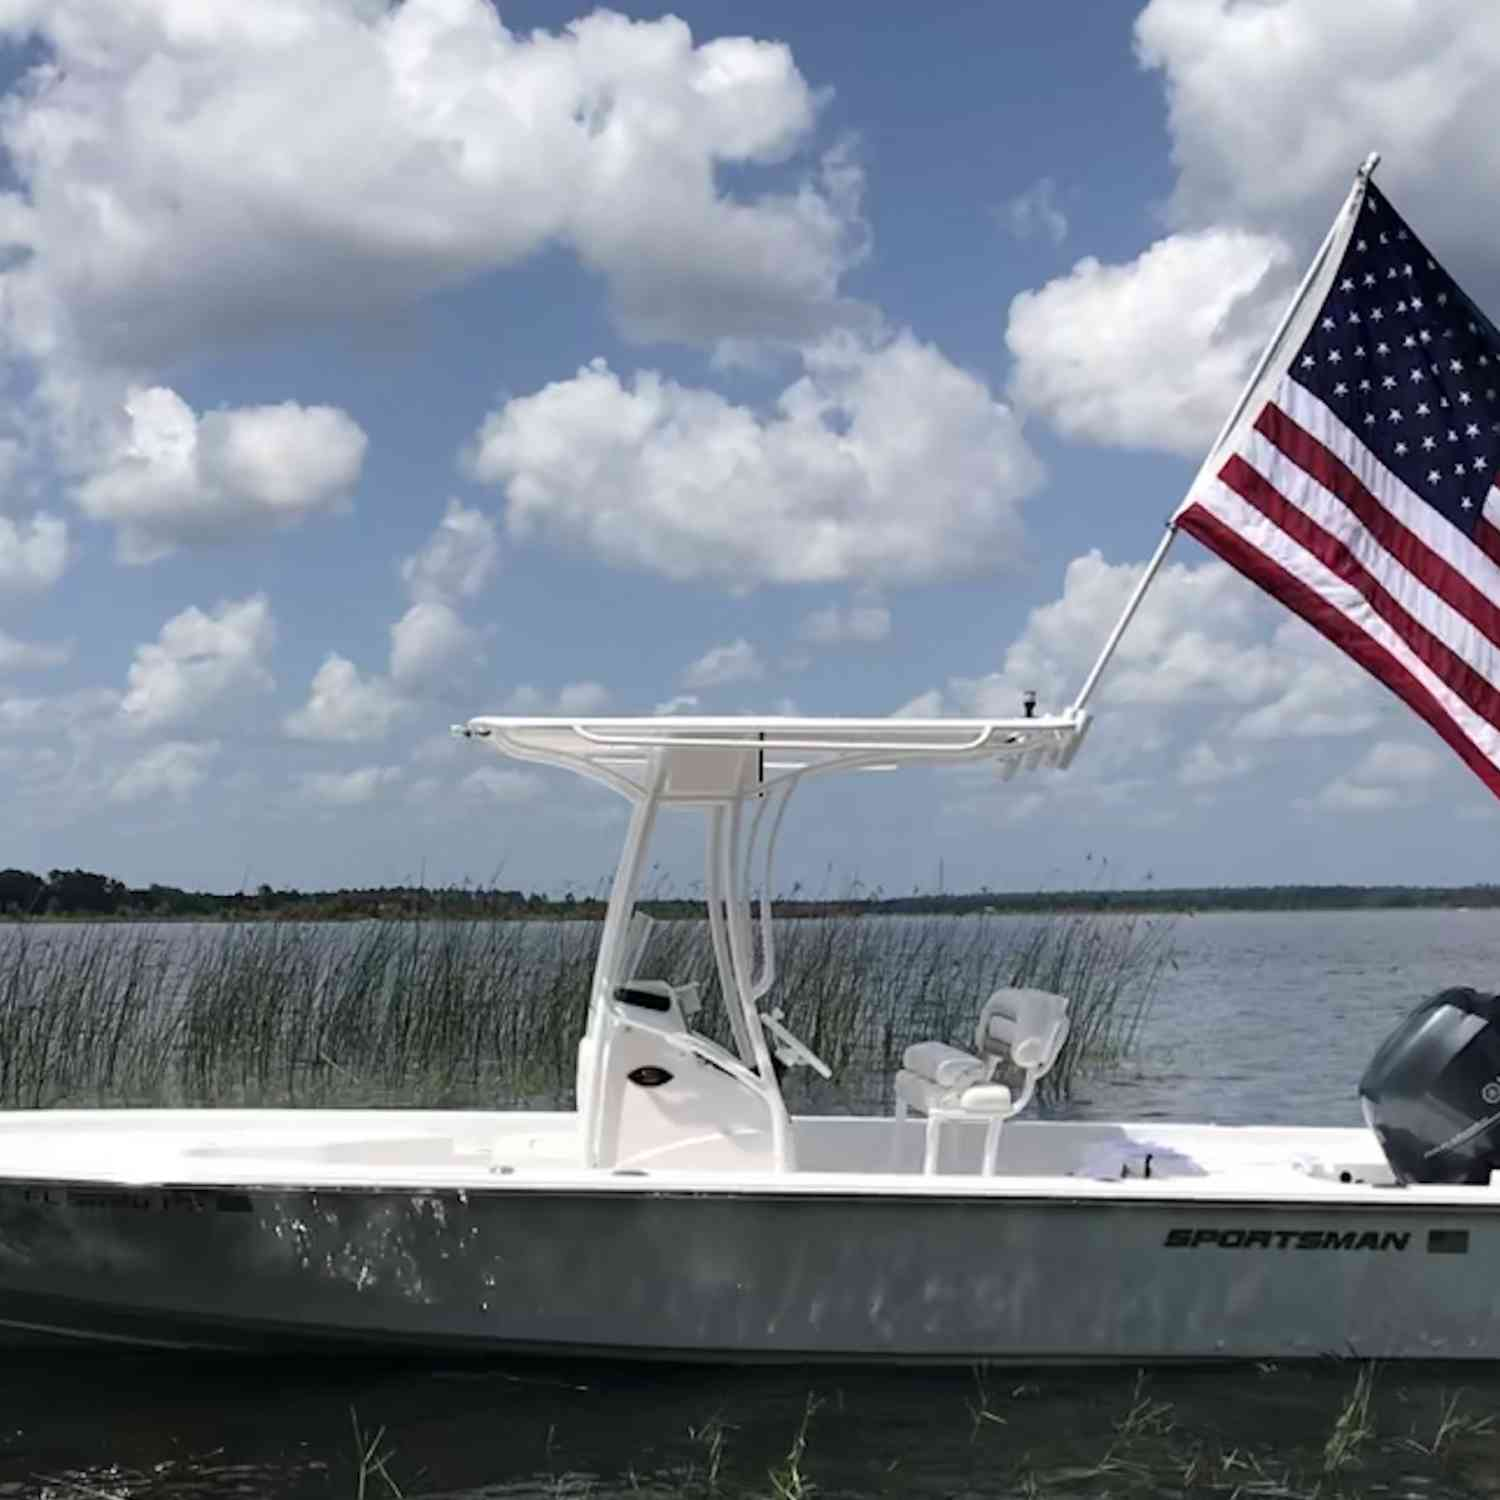 Title: Made in the USA!! - On board their Sportsman Masters 227 Bay Boat - Location: Lake Kerr, Ocala, FL. Participating in the Photo Contest #SportsmanJuly2018